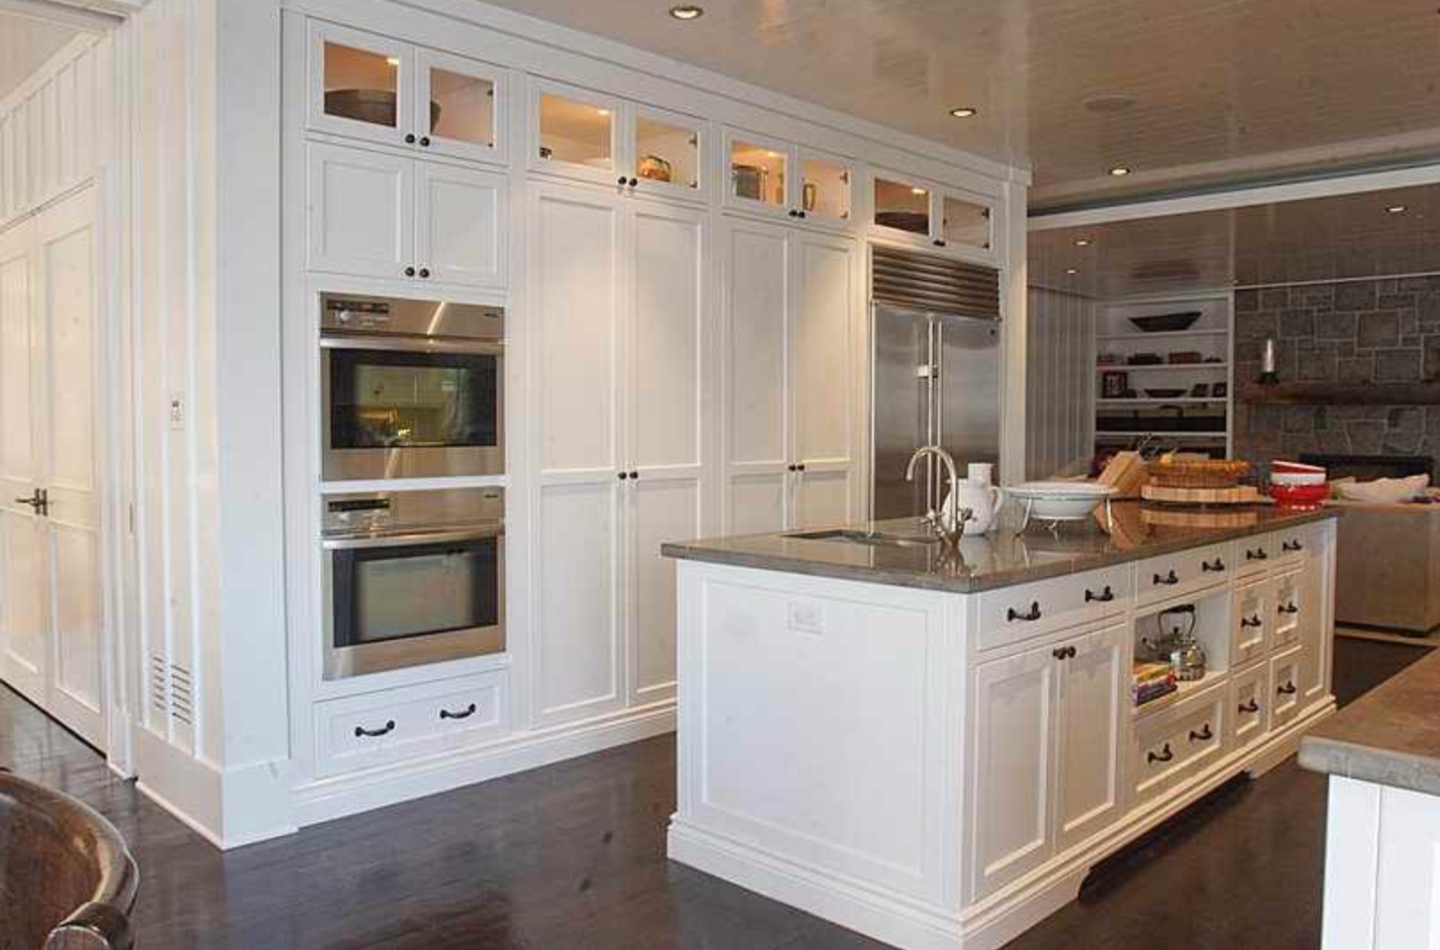 15 simple best way to paint kitchen cabinets white for Best way to paint kitchen cabinets video